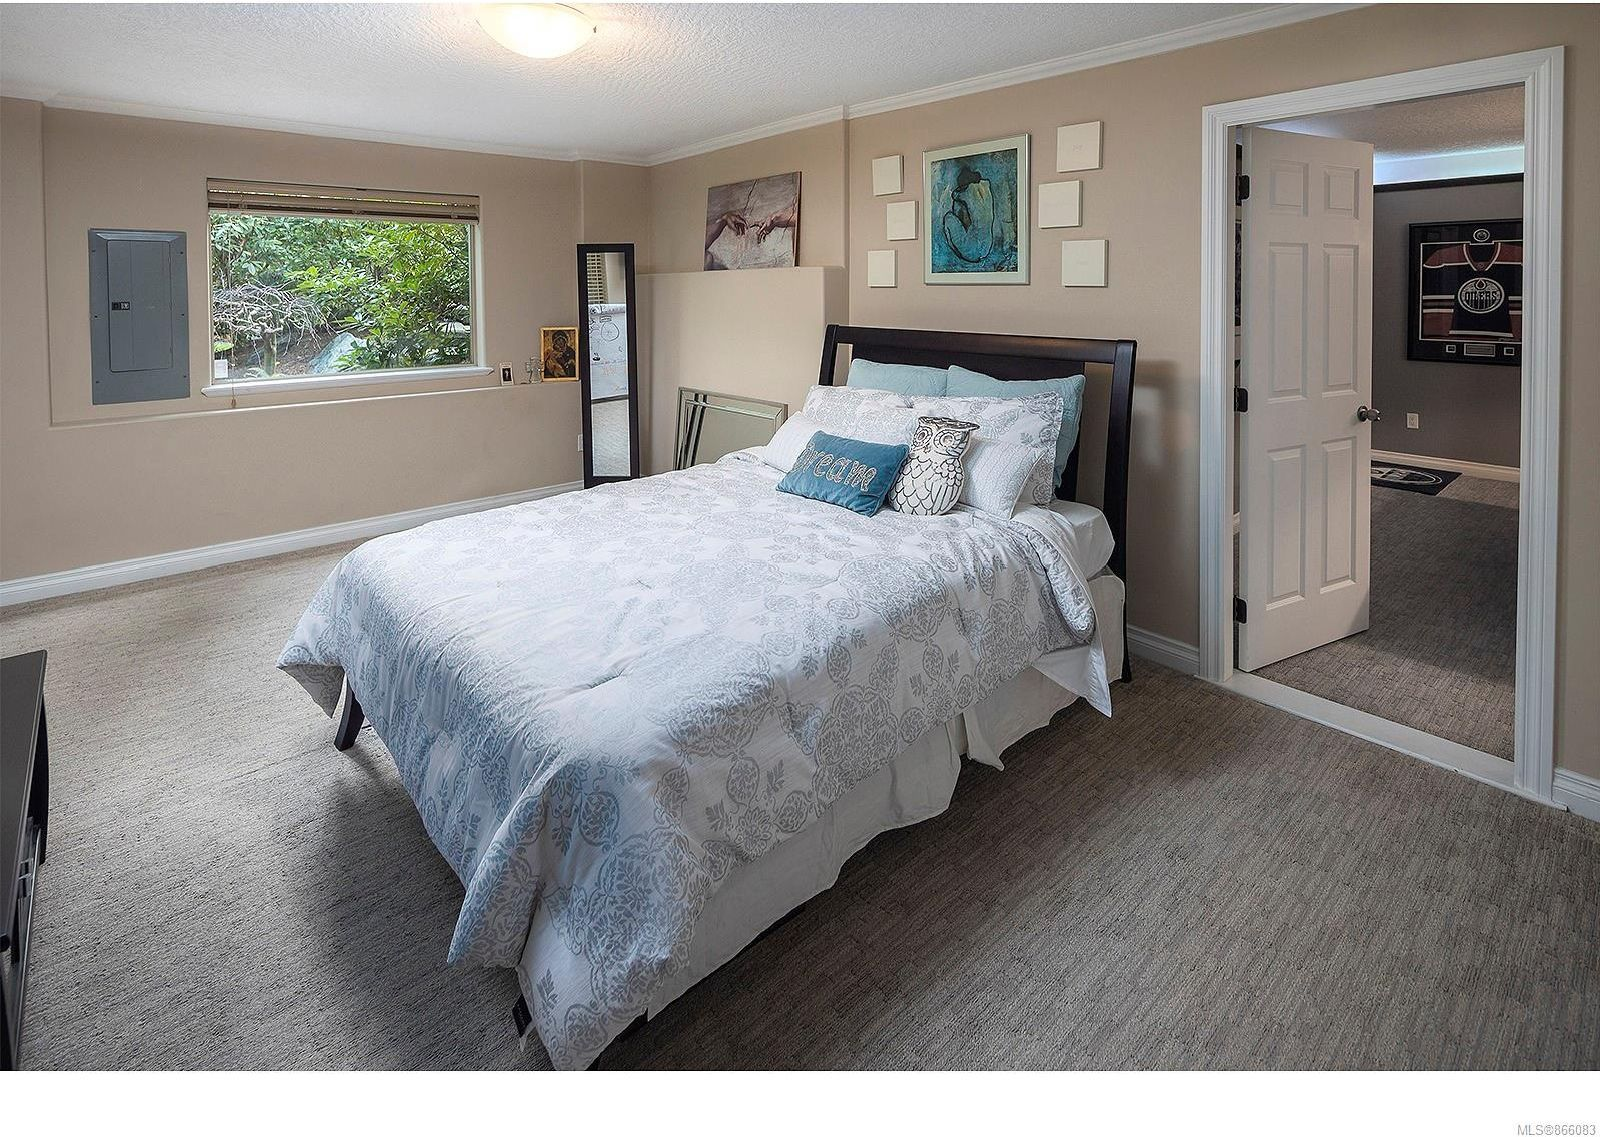 Photo 42: Photos: 5302 Sayward Hill Cres in : SE Cordova Bay House for sale (Saanich East)  : MLS®# 866083